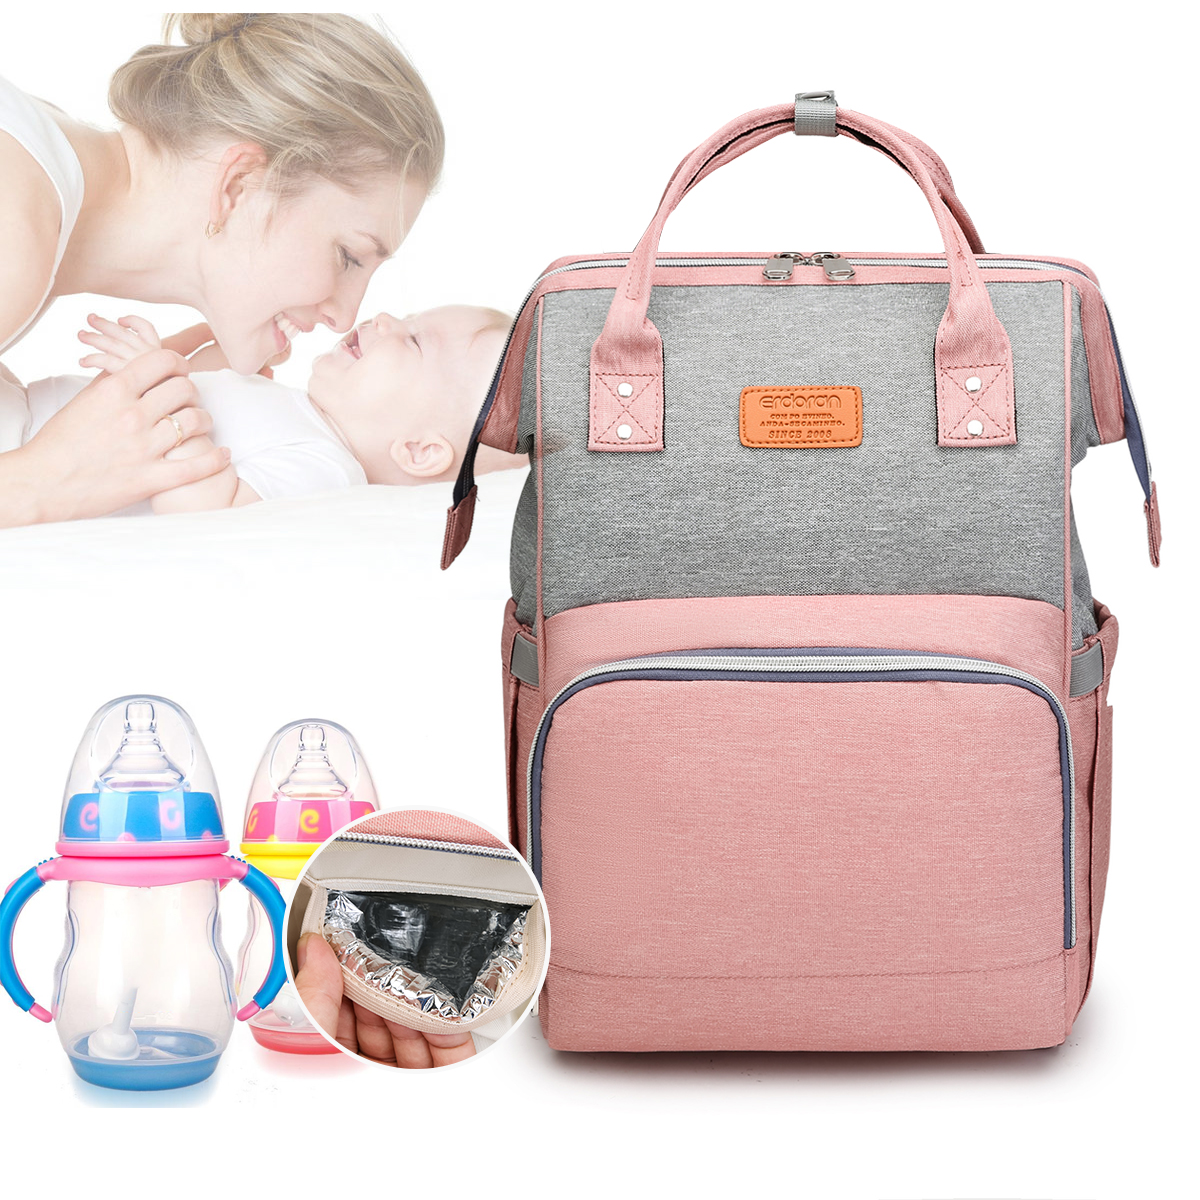 Maternity Bags Hot Mom Stroller Diaper Bag Backpack Multifunction Mummy Bag Large And Waterproof Baby Changing Bag Free Gifts!